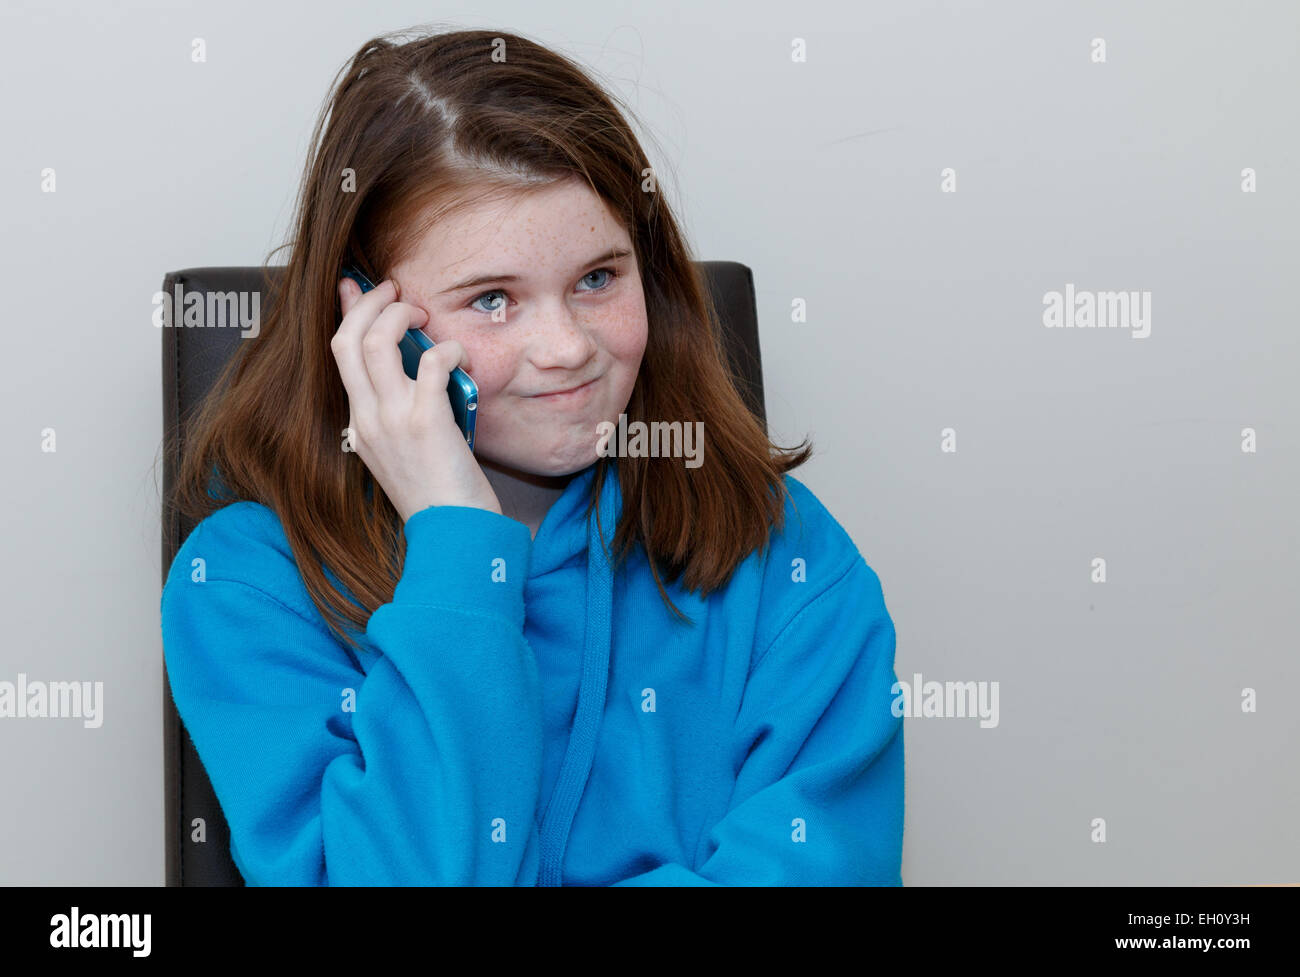 Young kid (girl 9-11 years) with red brown hair and freckles talking on a mobile phone looking frustrated and annoyed. - Stock Image